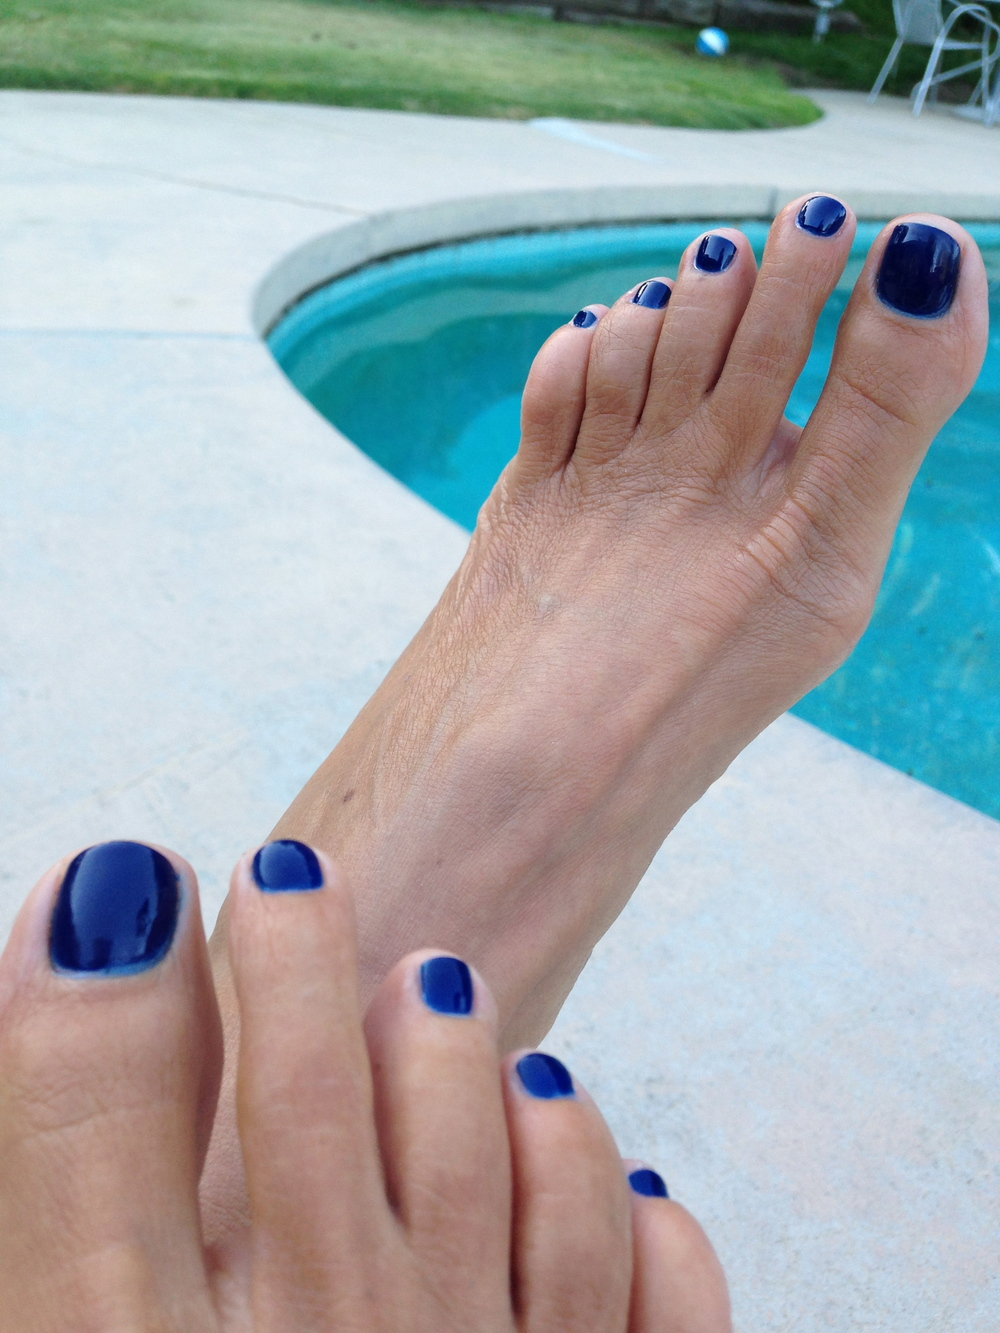 Perfect pedi for Fall: essie's new inky blue shade,  Style Cartel, $8.50.